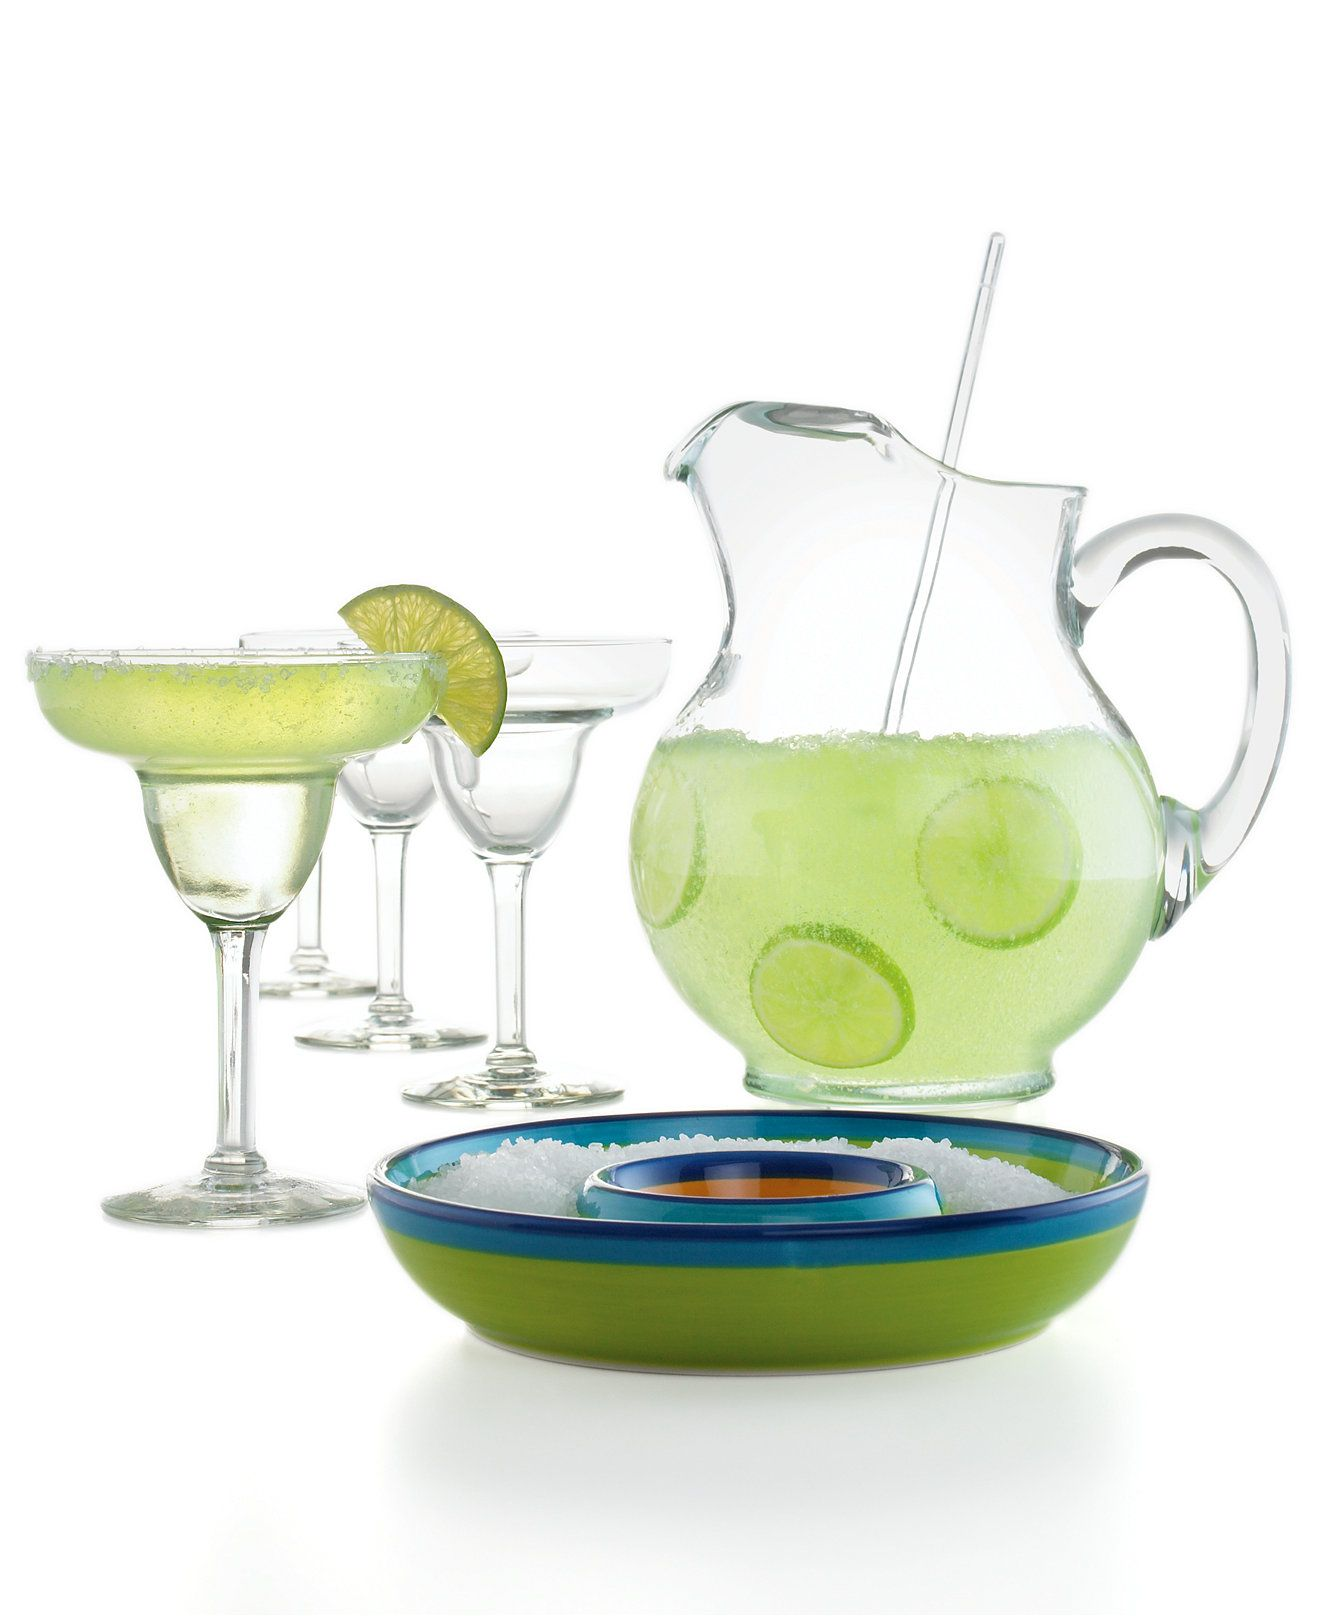 Macy Wedding Gifts: The Cellar Glassware, Margarita 7 Piece Set